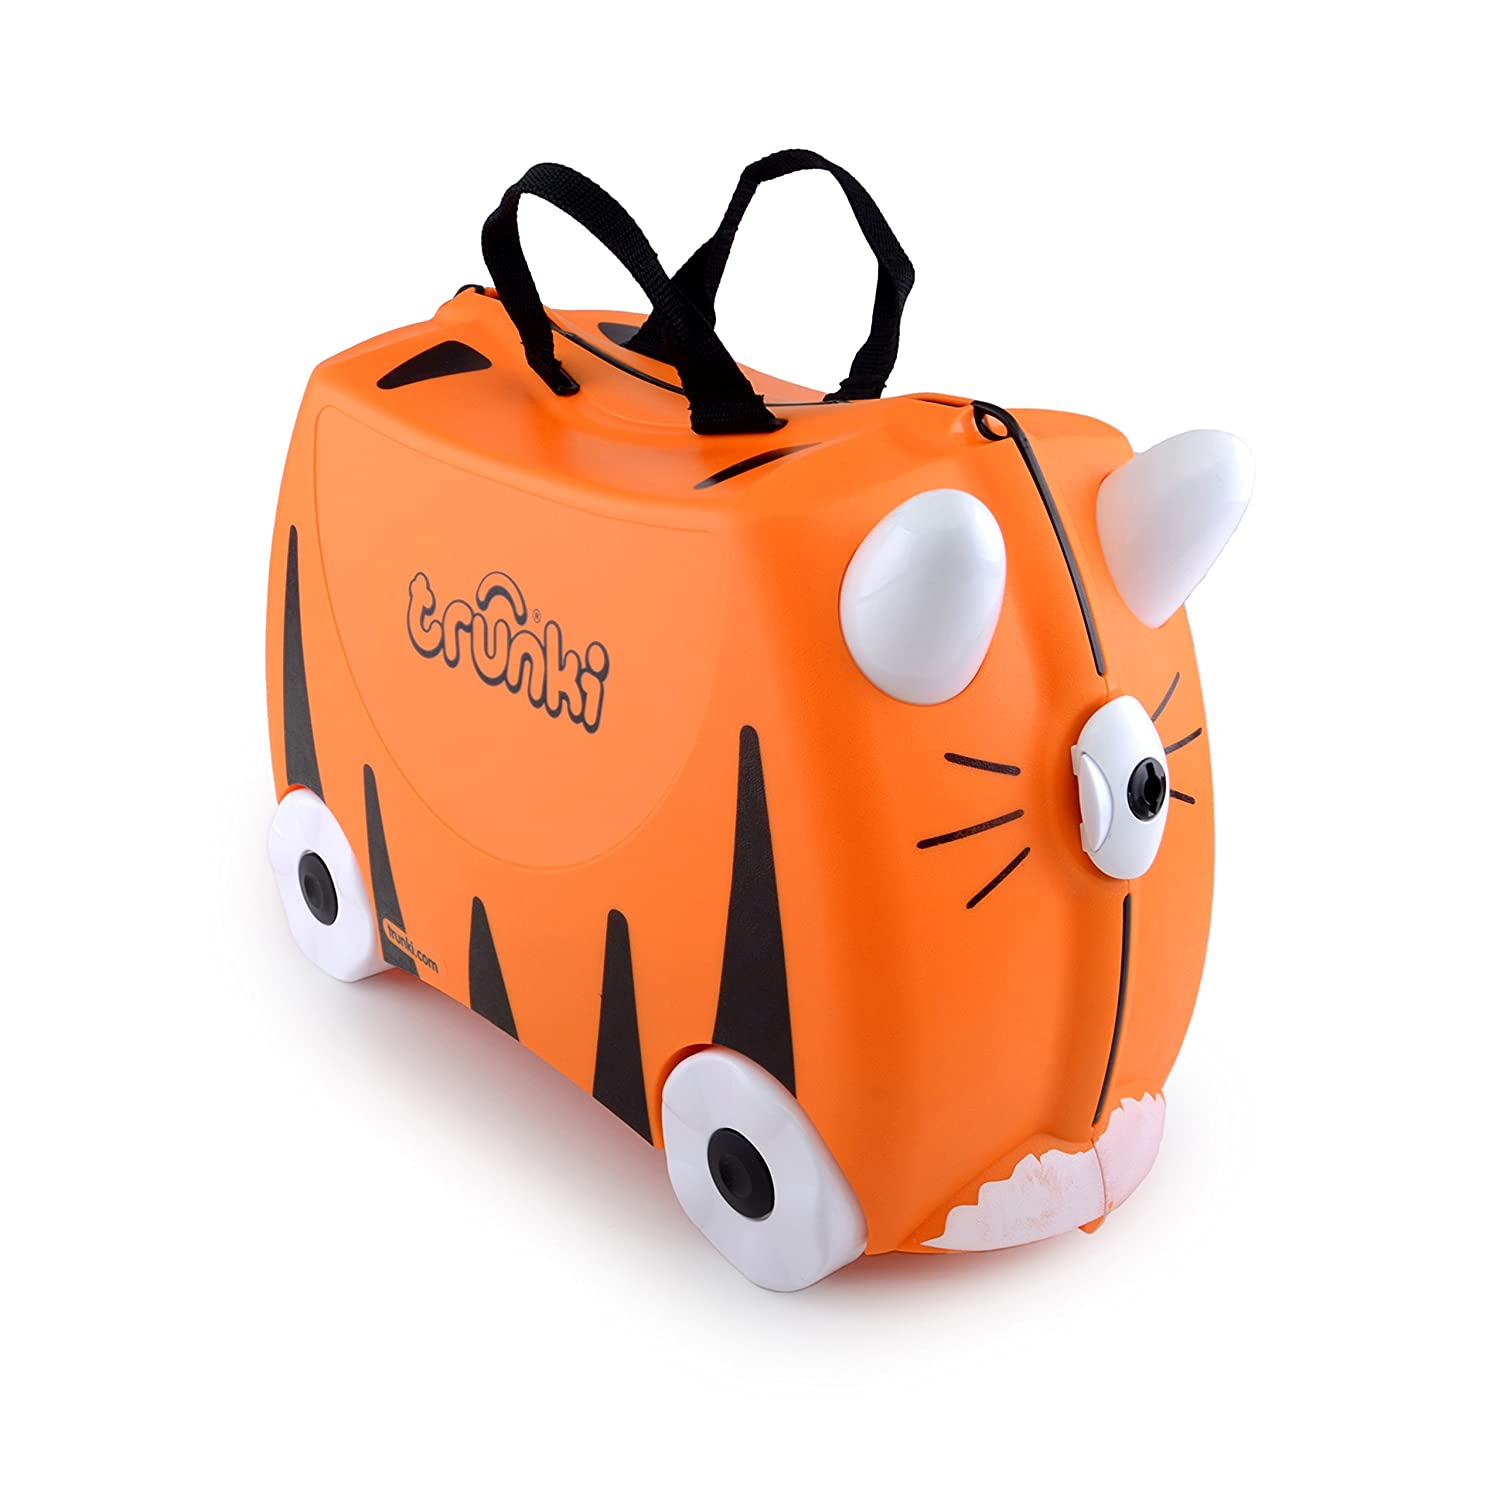 Trunki: The Original Ride-On Suitcase NEW, Harley (Red) 0092-GB01